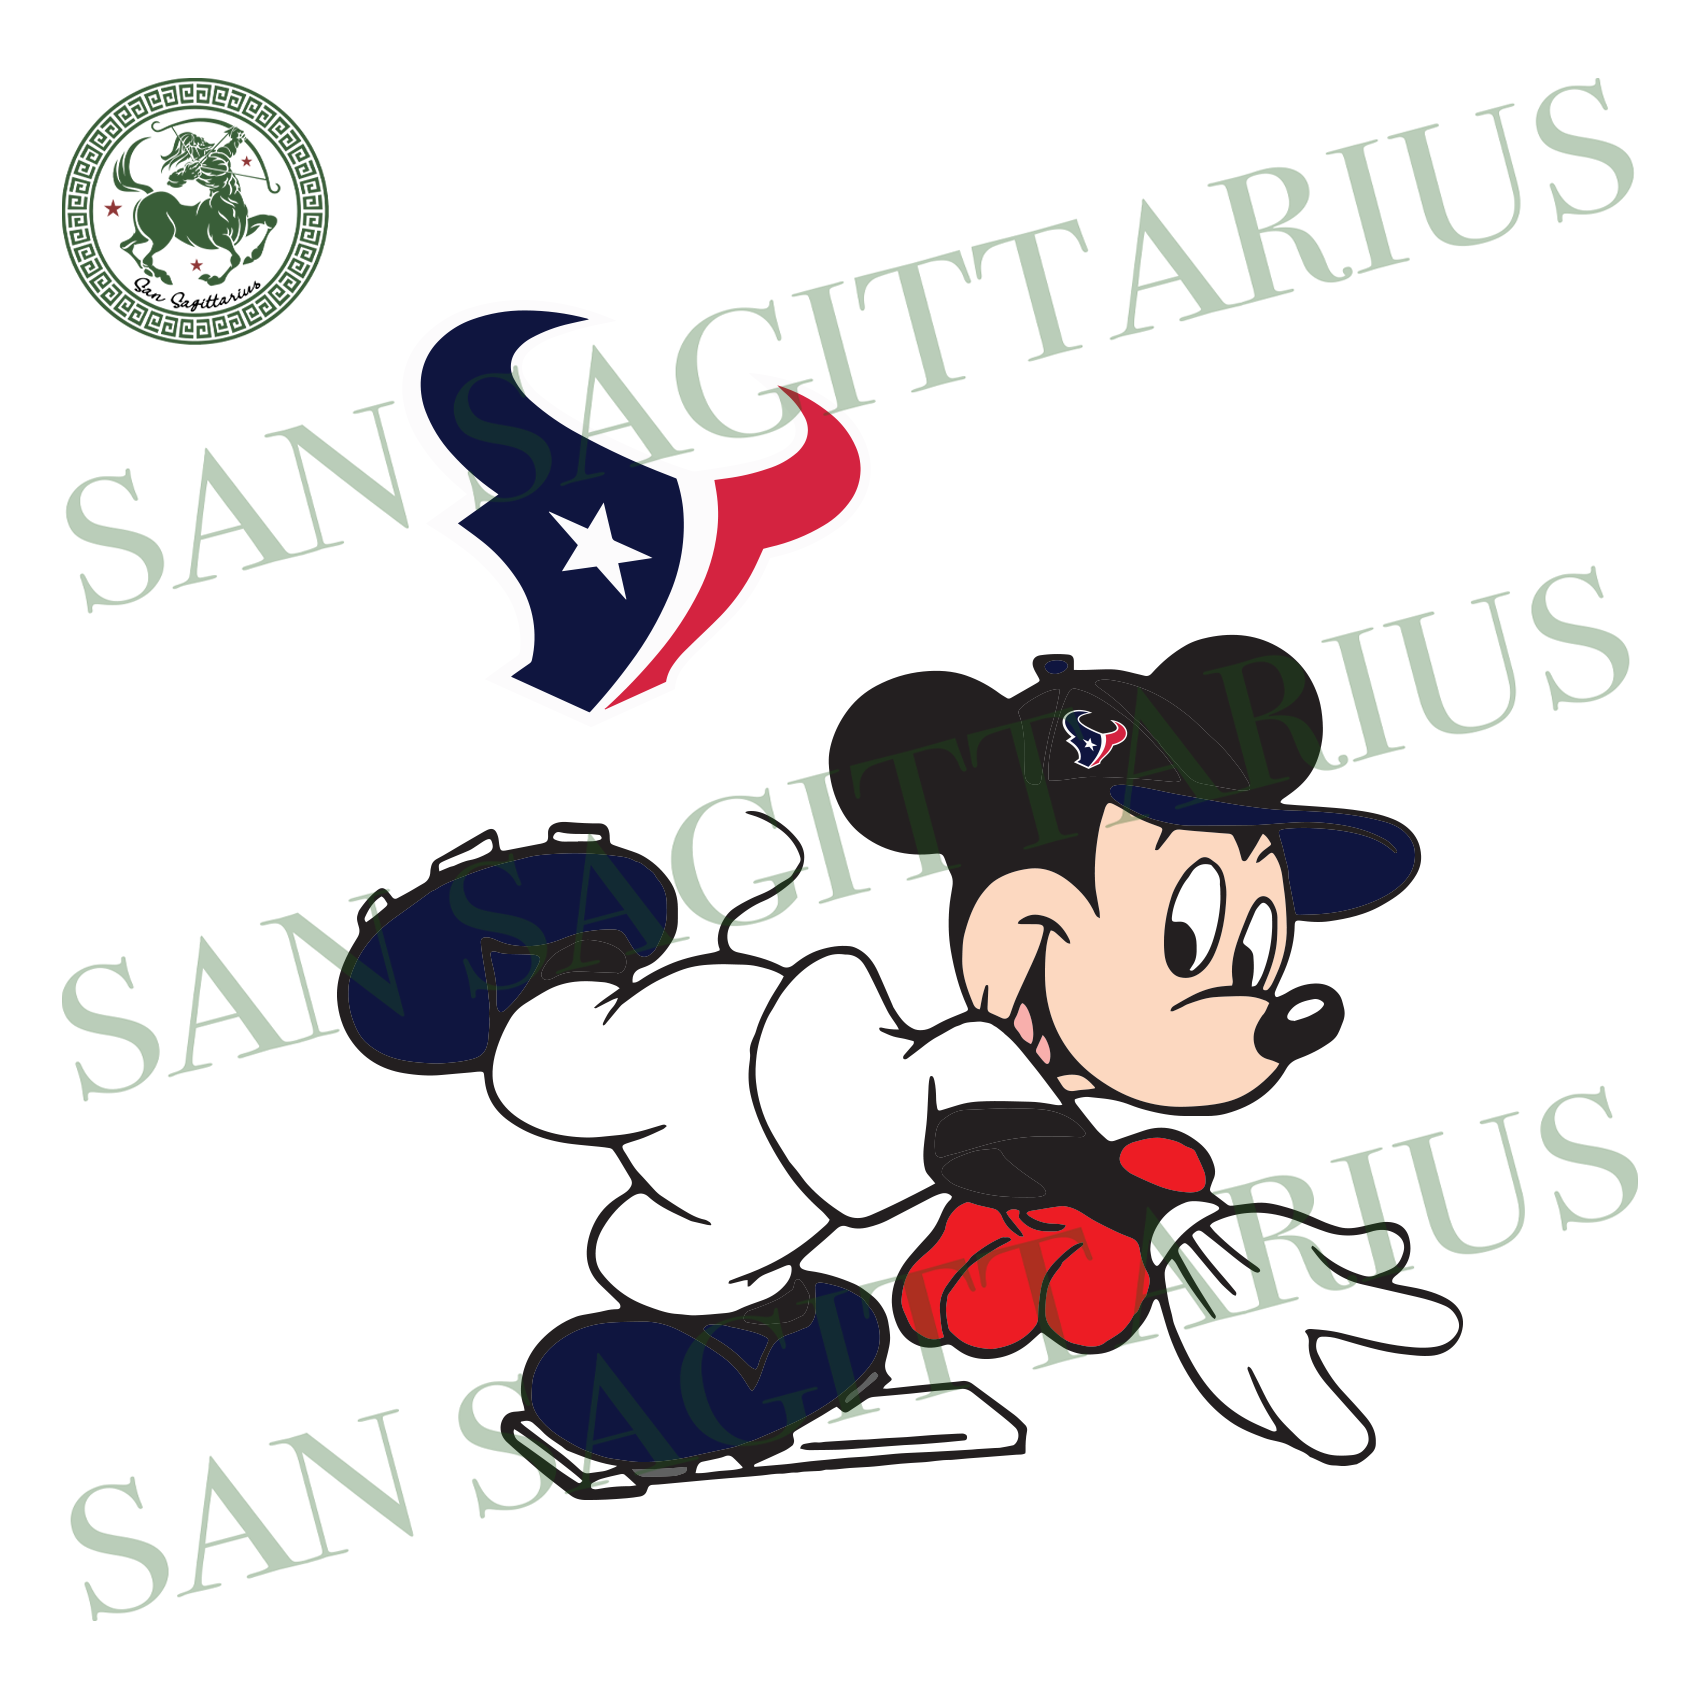 Houston Texans Logo And Mickey, Sport Svg, NFL Football Svg, NFL Svg, NFL Sport, Houston Texans Svg, Houston Texans Logo, Houston Texans NFL Lover, Houston Texans NFL Svg, Football Svg